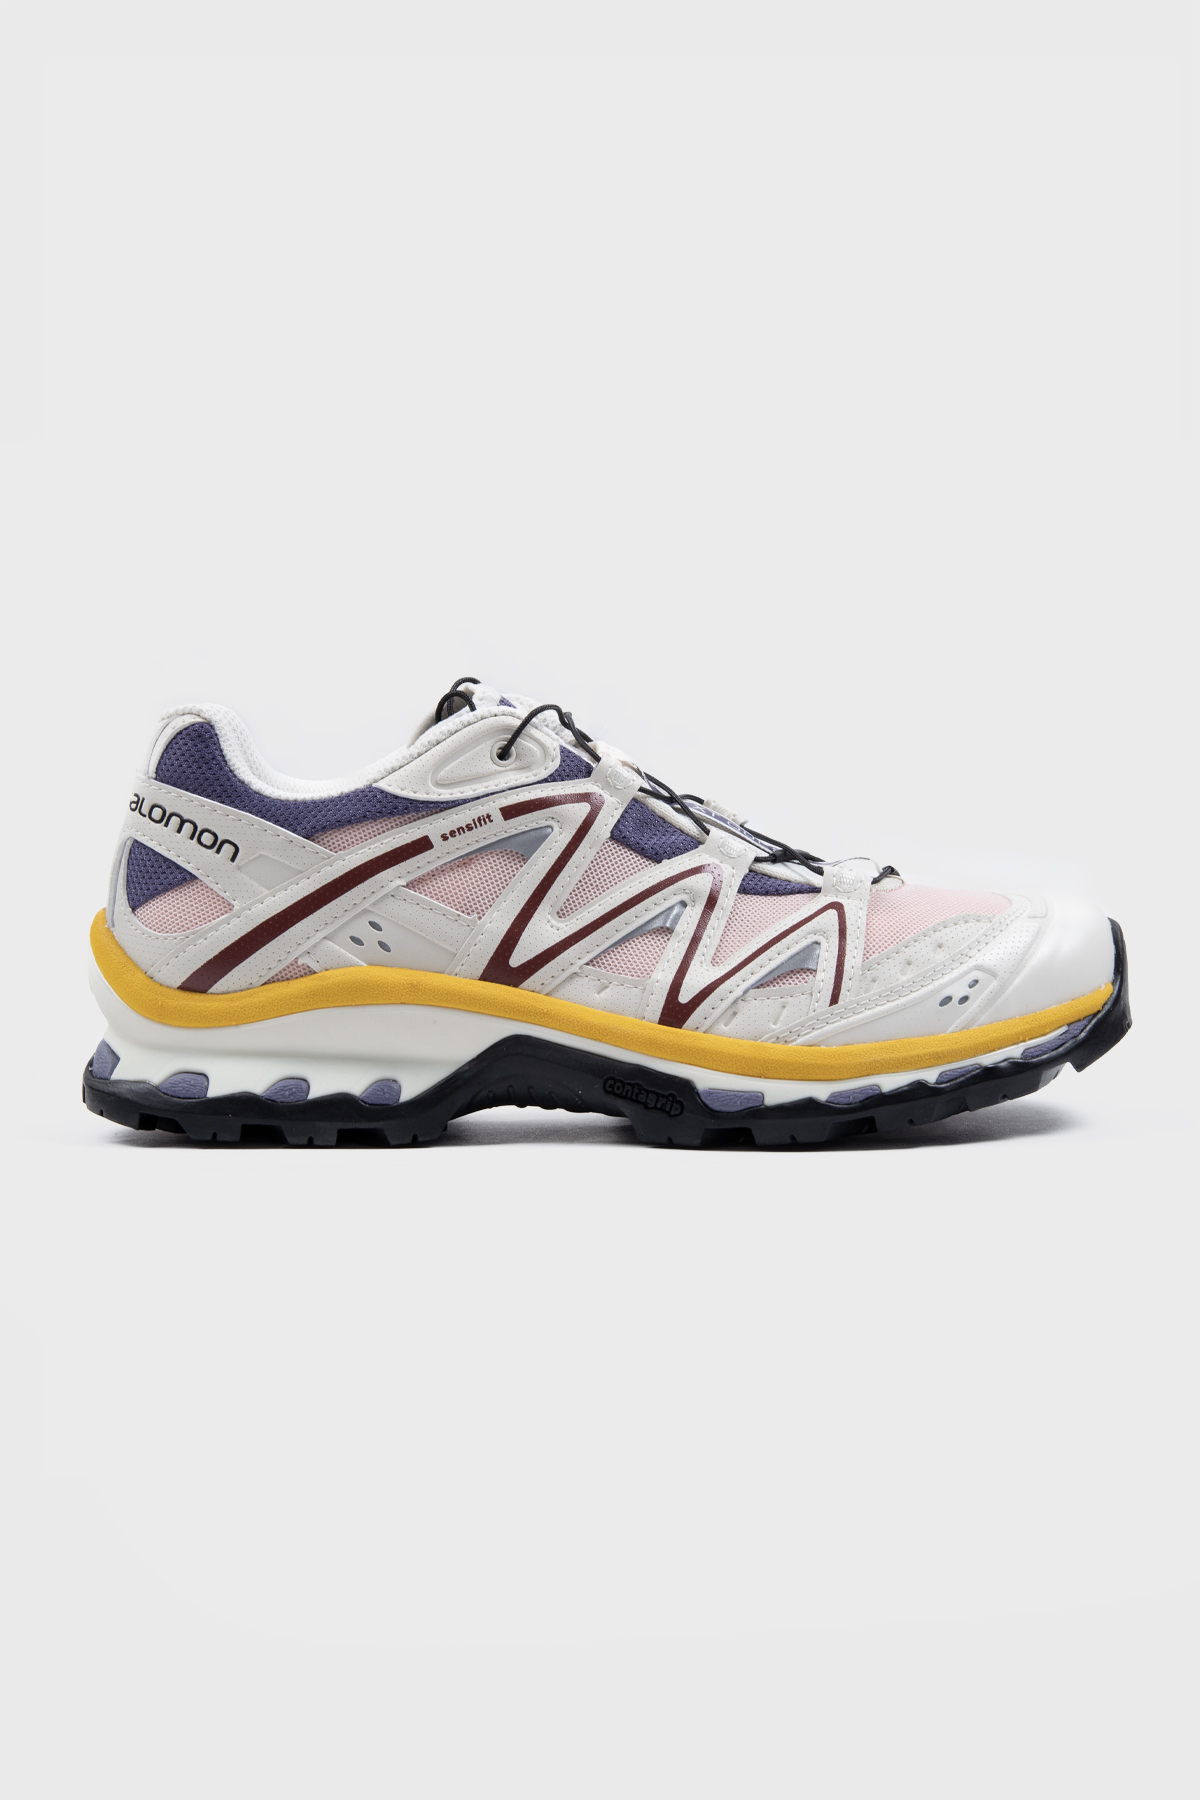 Salomon - XT-Quest -  Cadet Tropical Peach Vanilla Ice